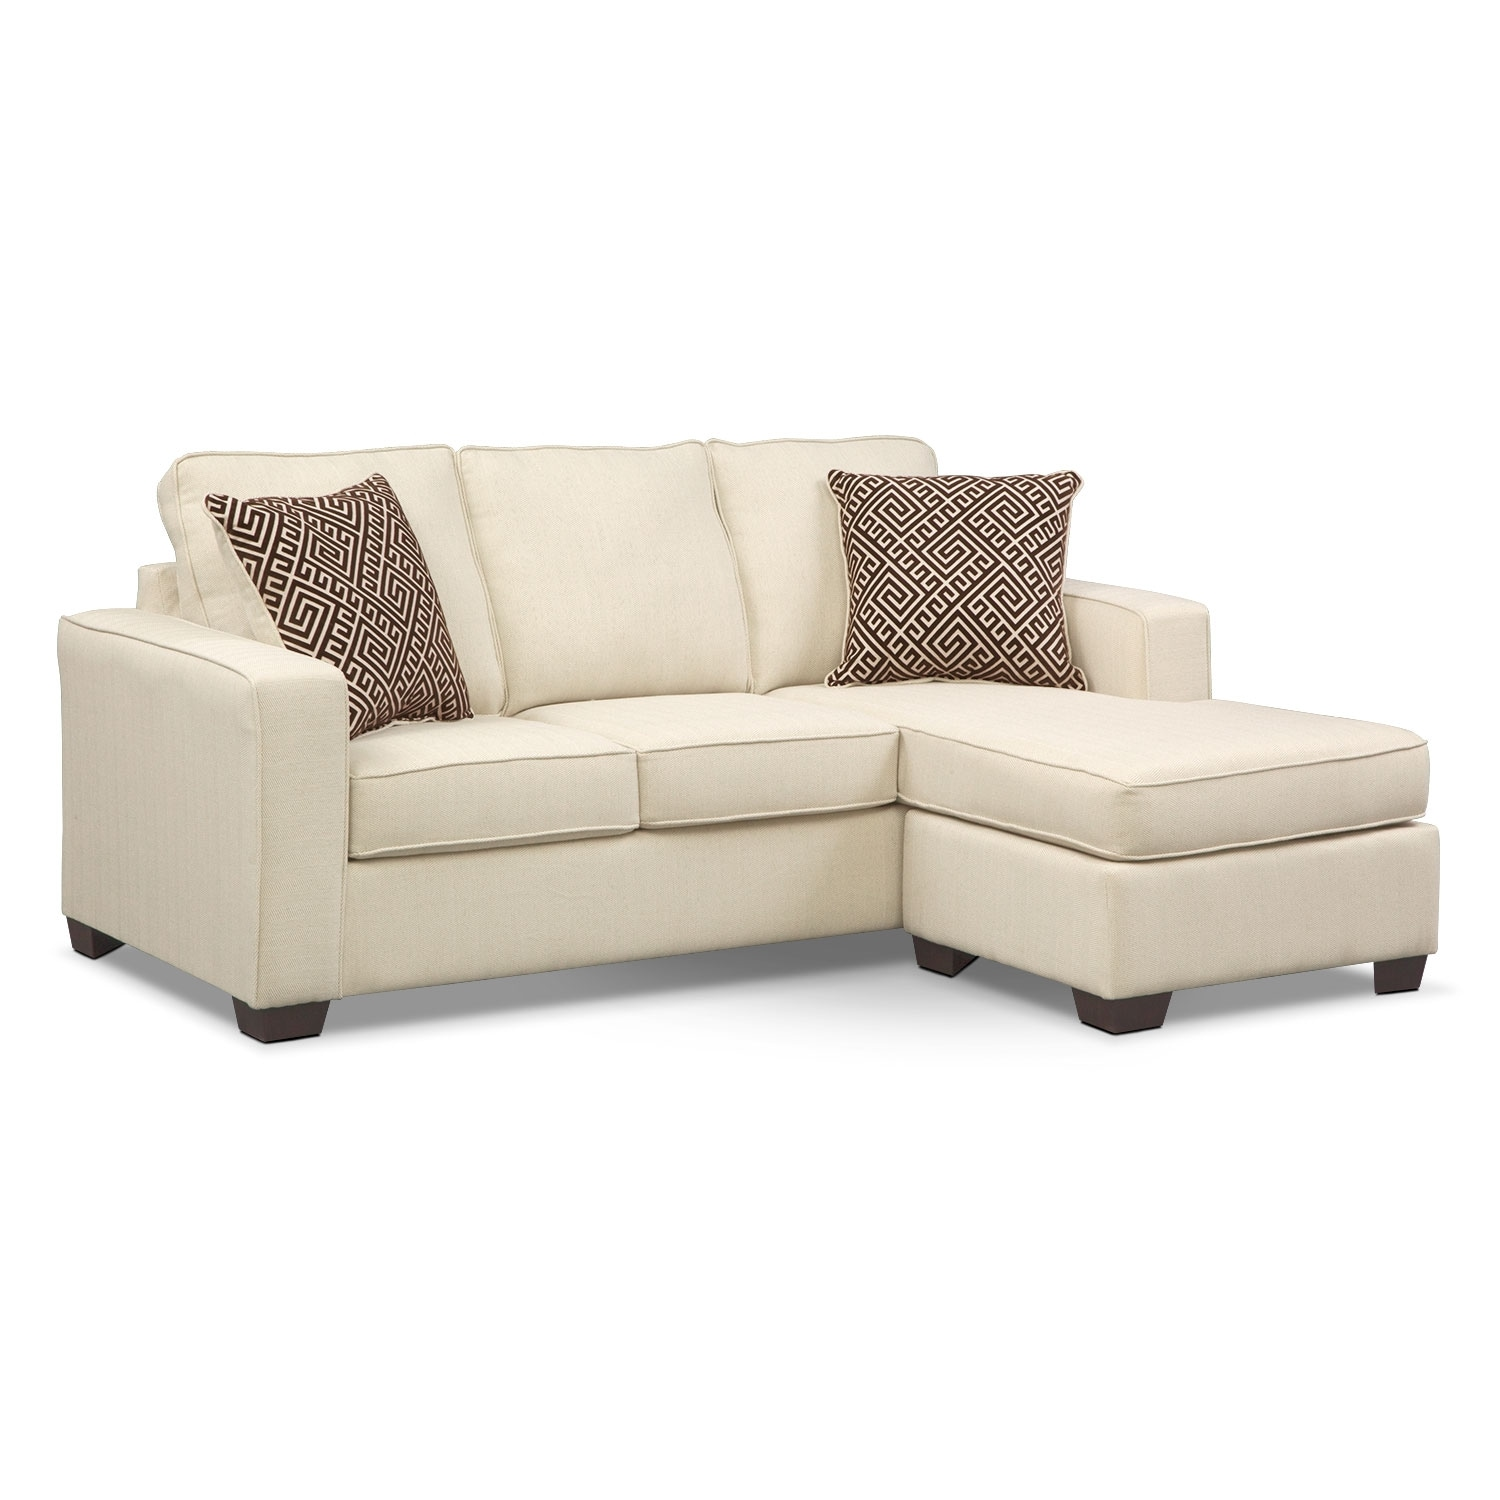 sterling innerspring sleeper sofa with chaise beige